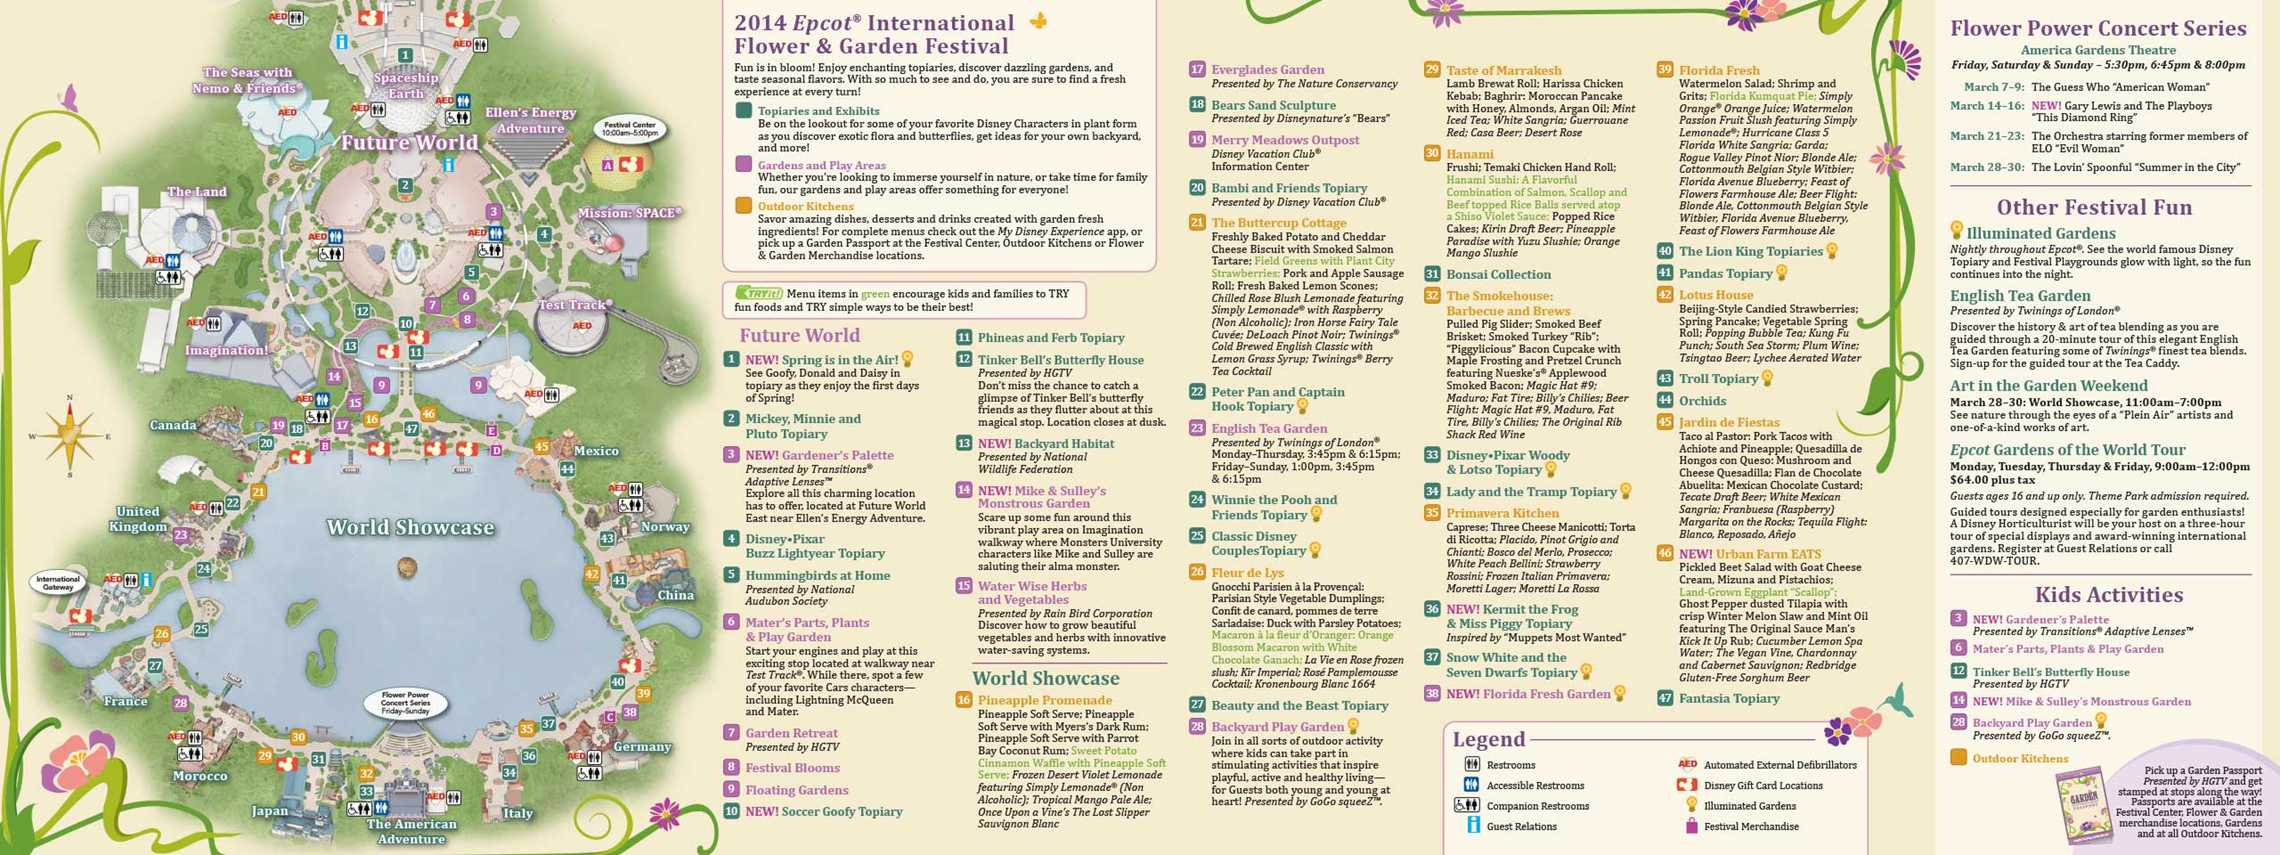 2014 Epcot Flower and Garden Festival guide map